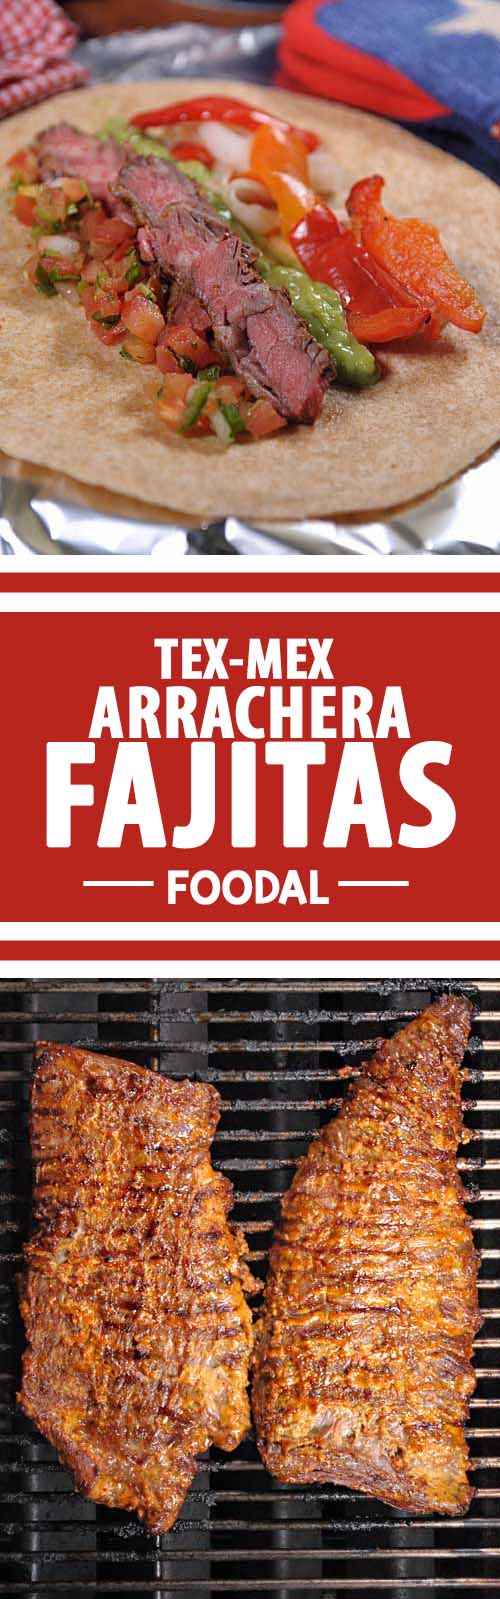 Are you looking for the perfect fall game day recipe? One that is also suitable for tailgating and grilling? Look no further than this tasty fajita recipe made with a traditional marinade and skirt steak! http://foodal.com/recipes/beef/the-best-arrachera-fajitas/